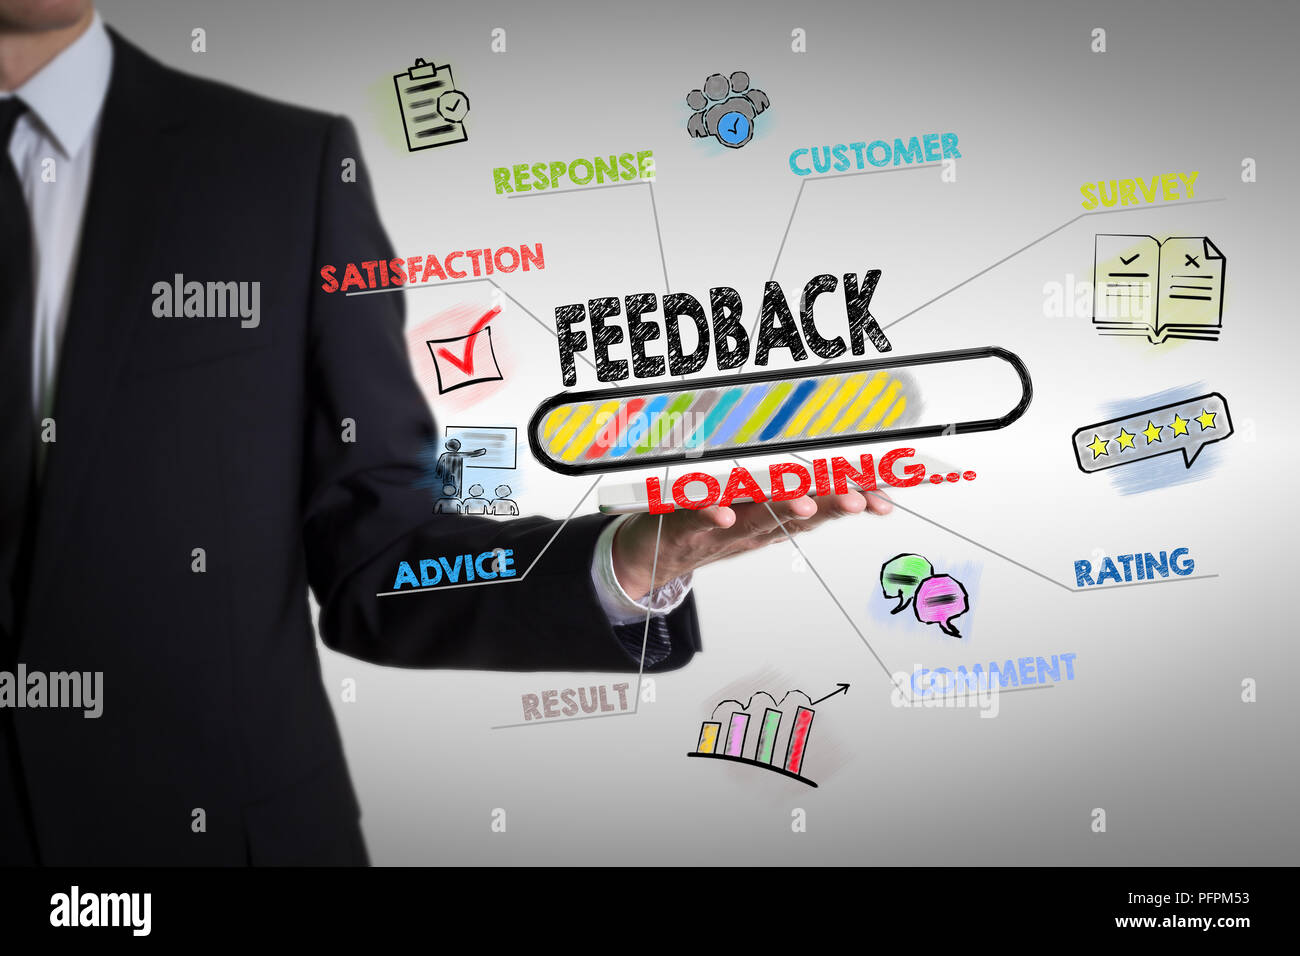 Feedback, Business concept. Chart with keywords and icons - Stock Image